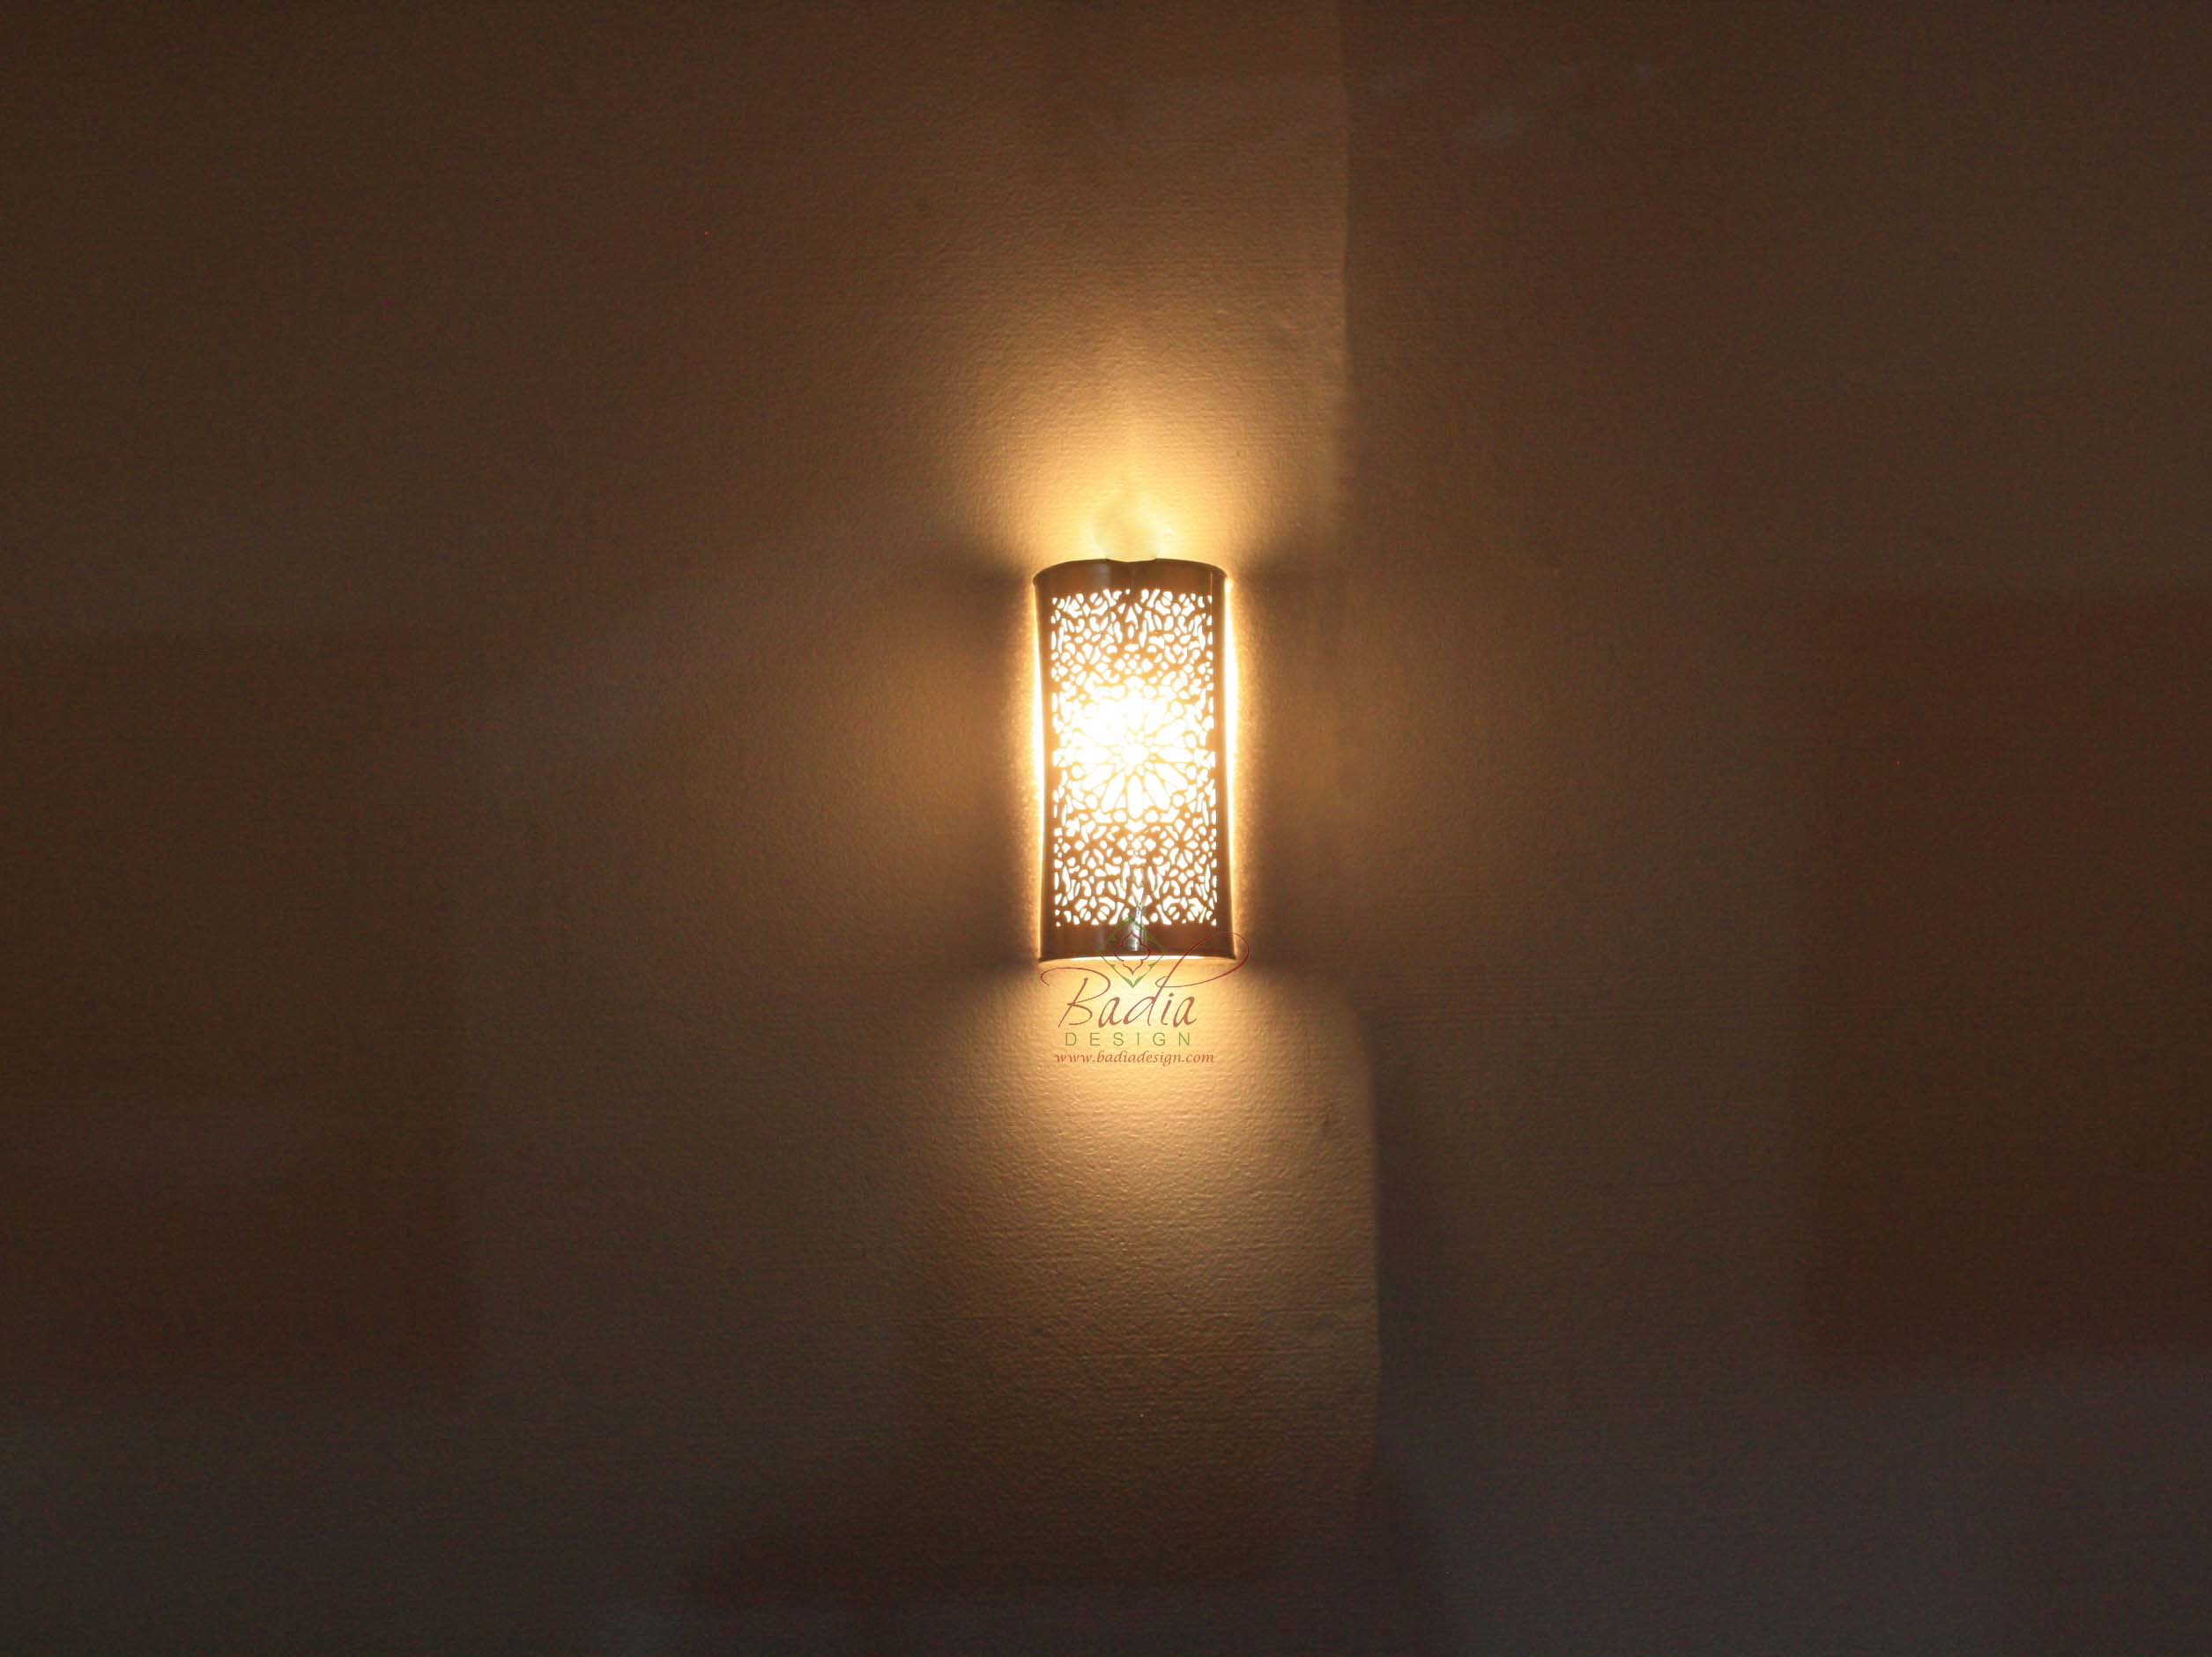 moroccan-half-cylinder-brass-and-silver-wall-sconce-wl200-2a.jpg